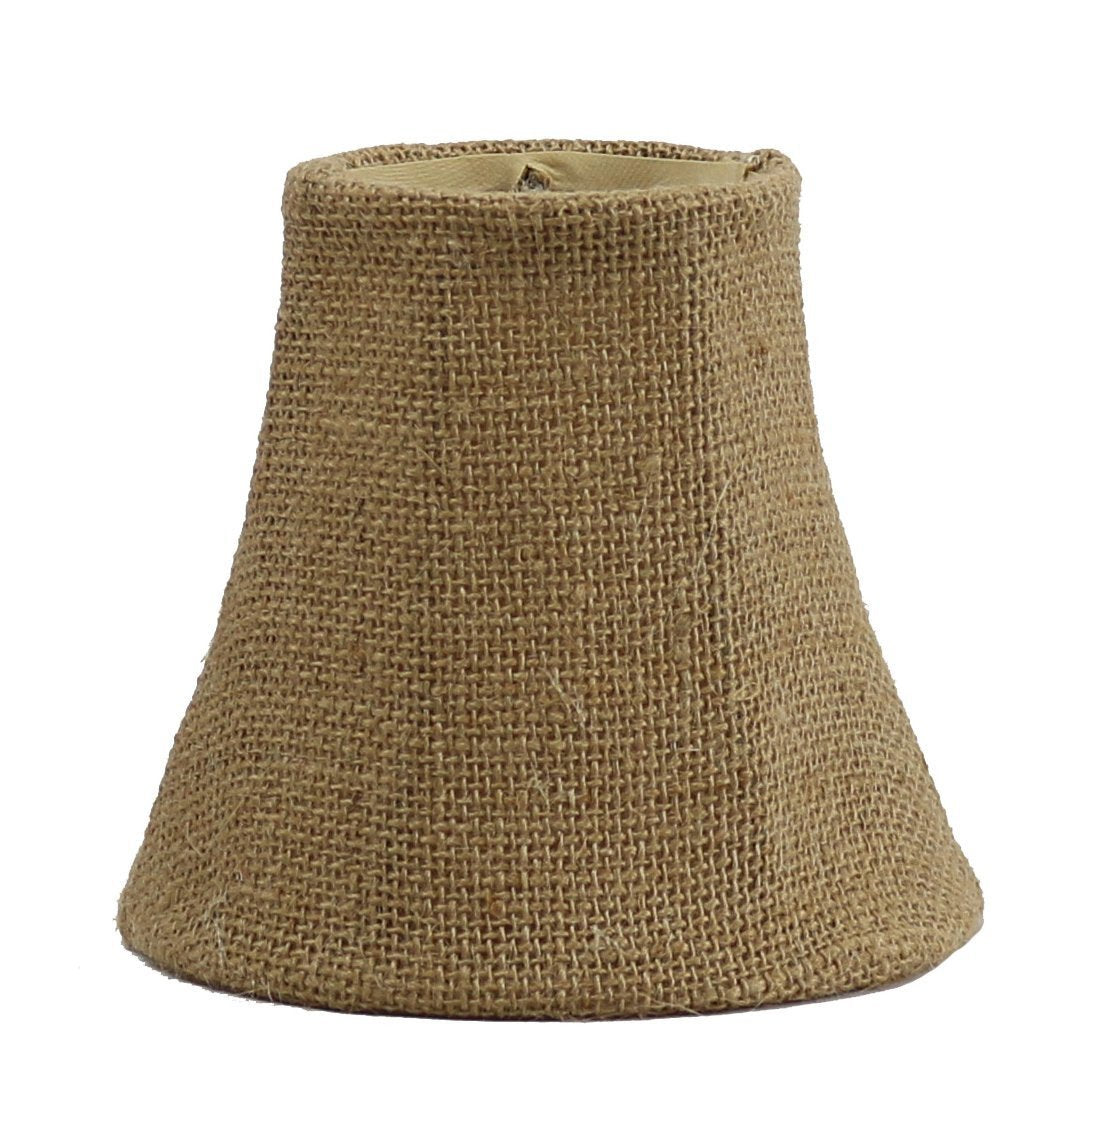 3-inch by 5-inch by 4.5-inch Burlap Bell Clip-on Chandelier Shade